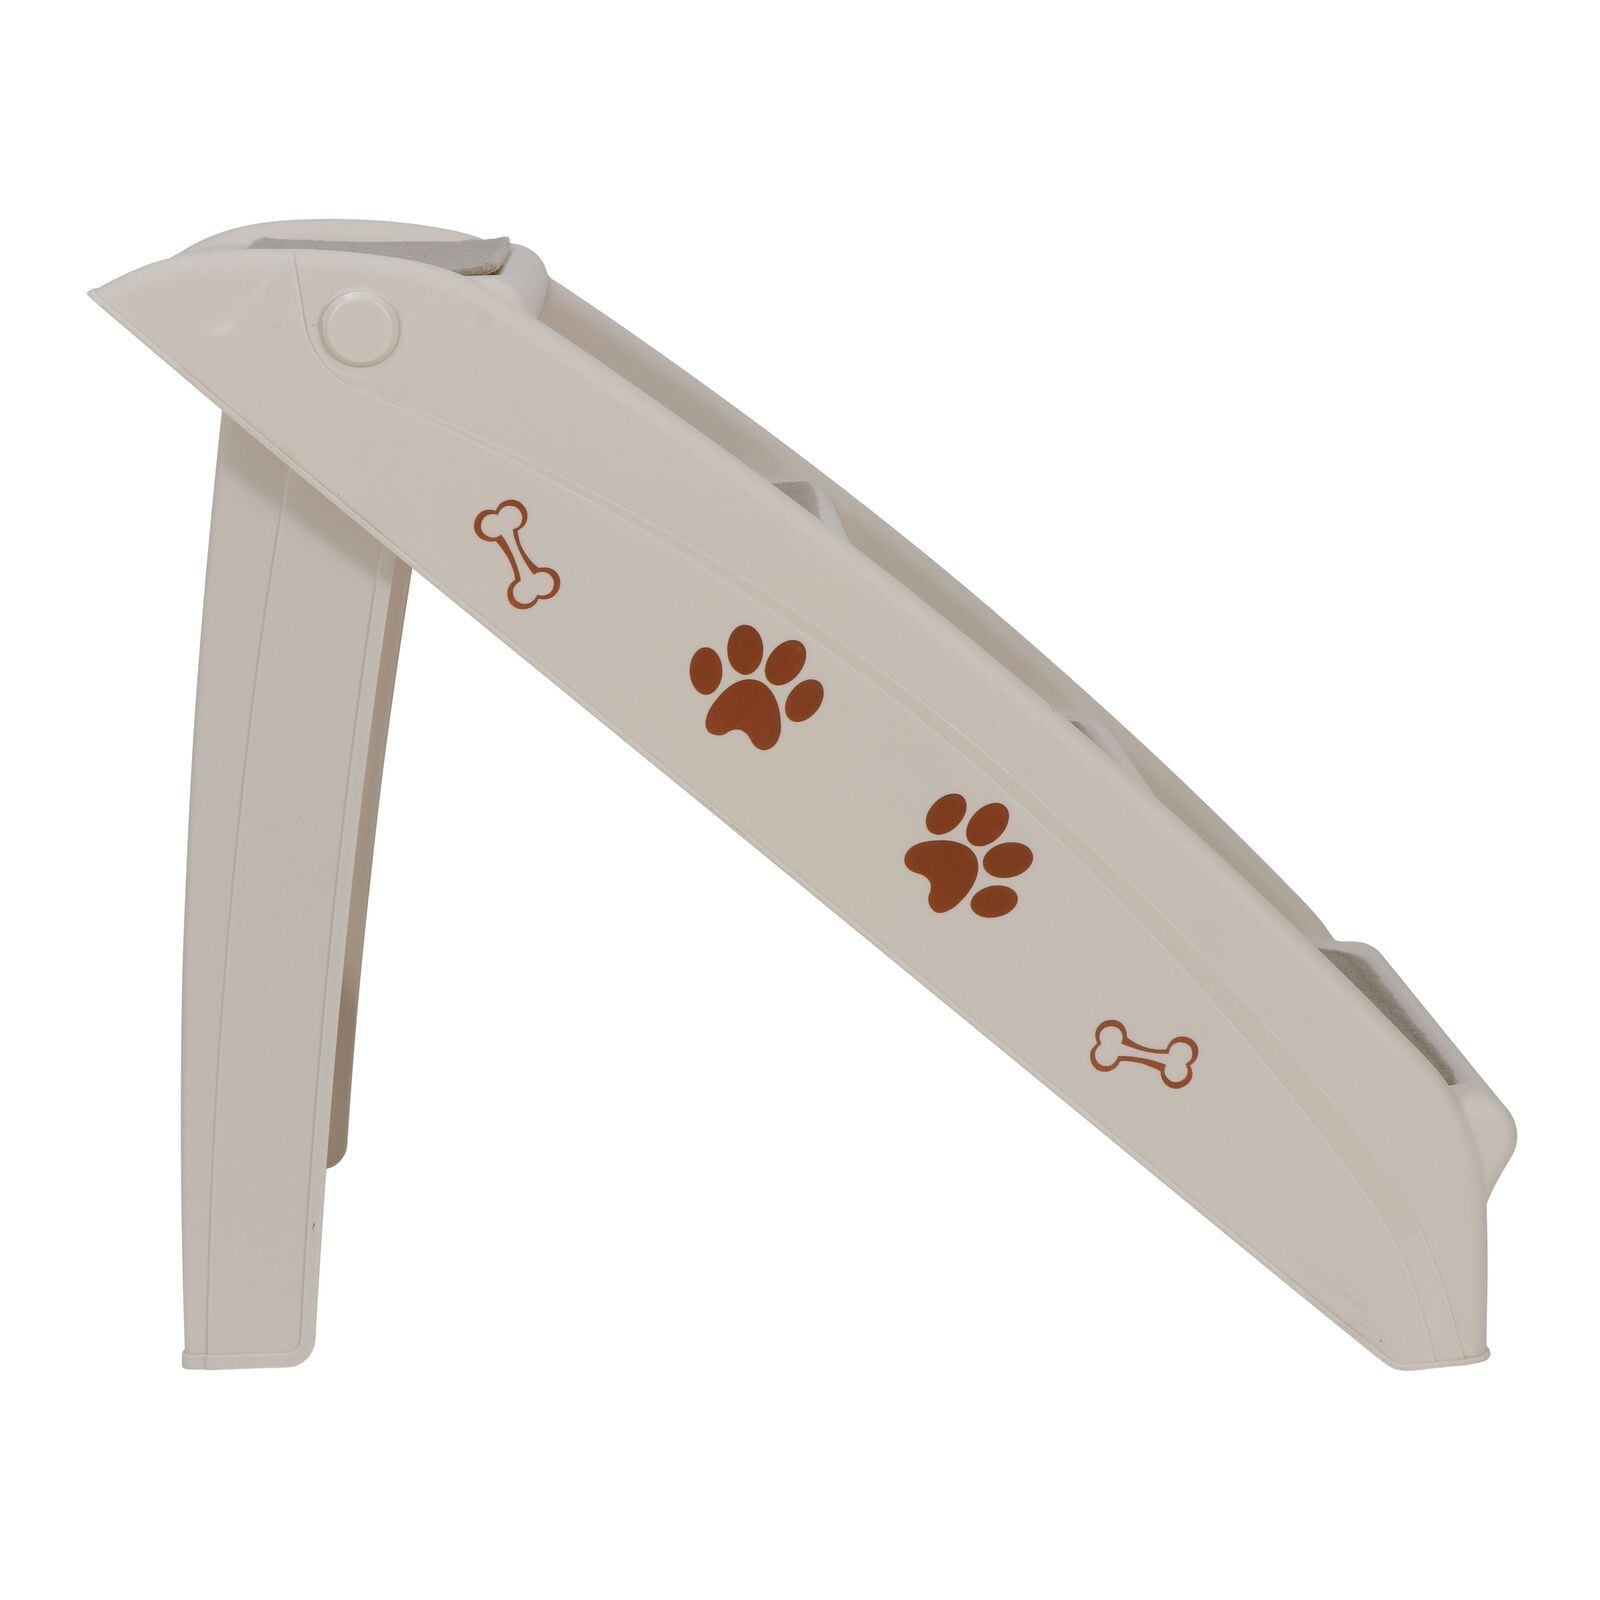 Pet Dog Cat Stairs 4 Steps Foldable Safe For Home Sofa Bed Car - HOMA plus